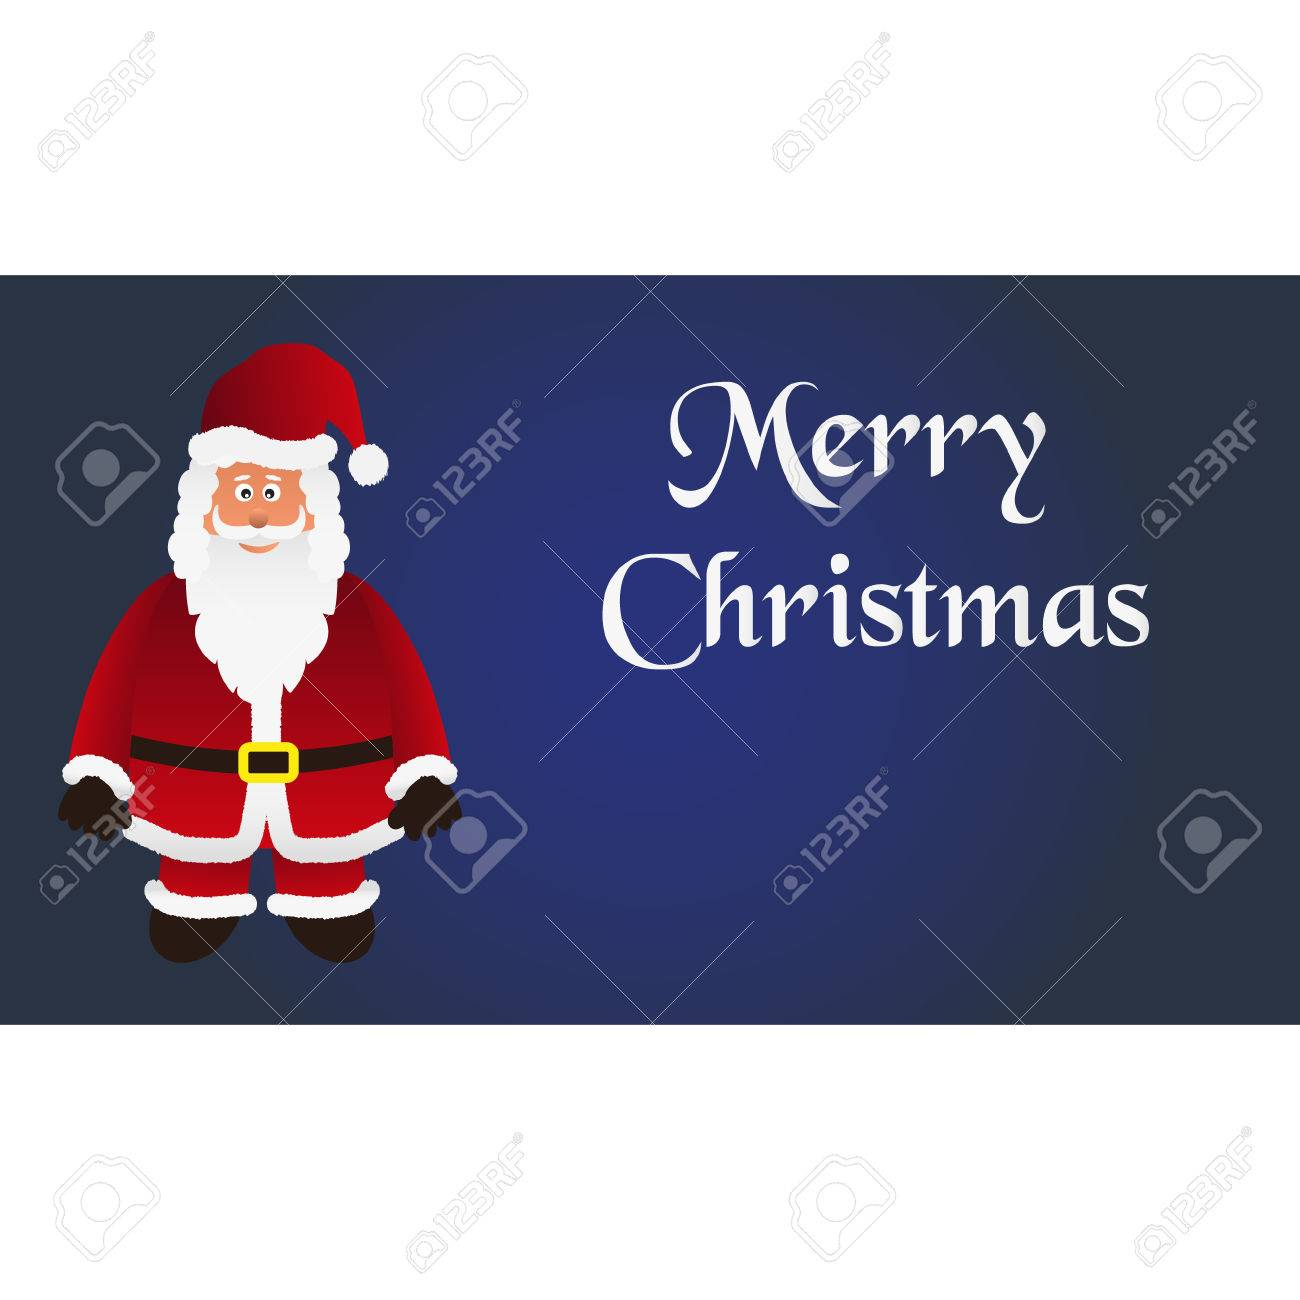 Mery Christmas.Mery Christmas With Cartoon Santa Claus With Red Outfit